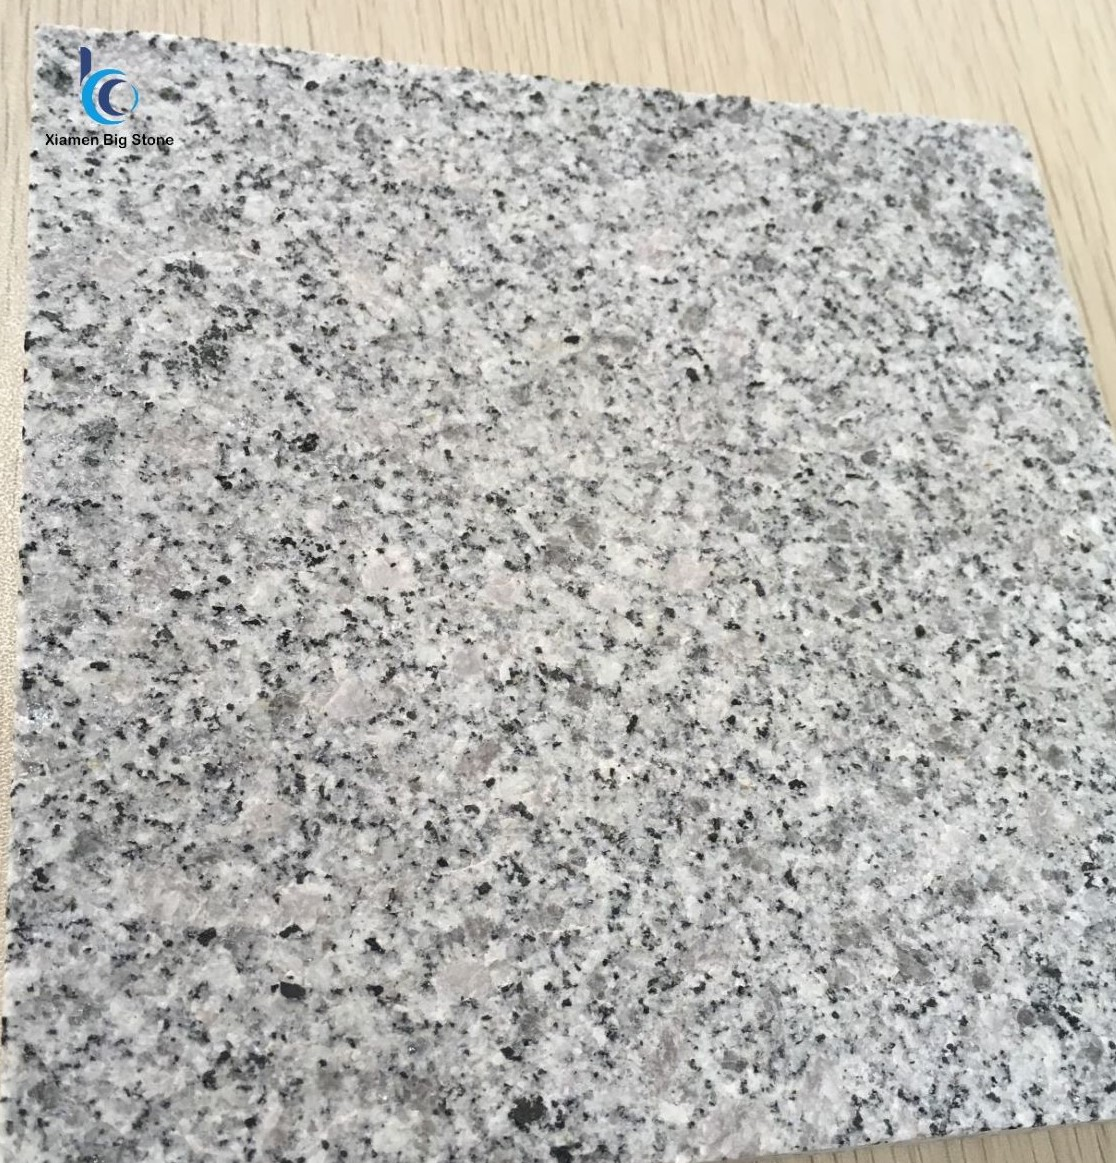 Silver Grey G603 Flamed Paving Tiles